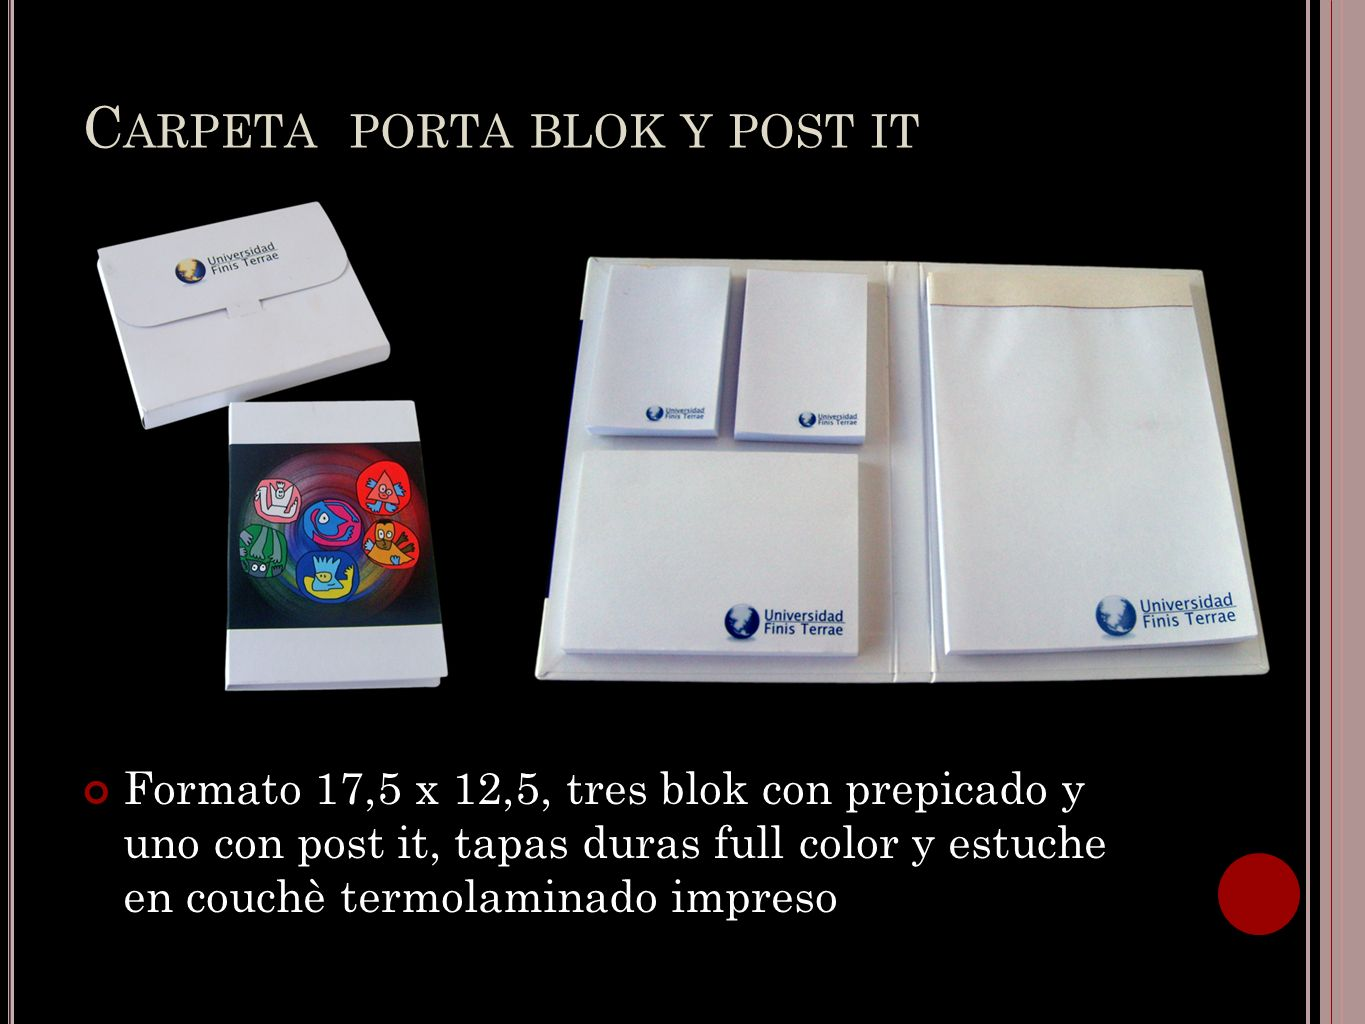 Carpeta porta blok y post it